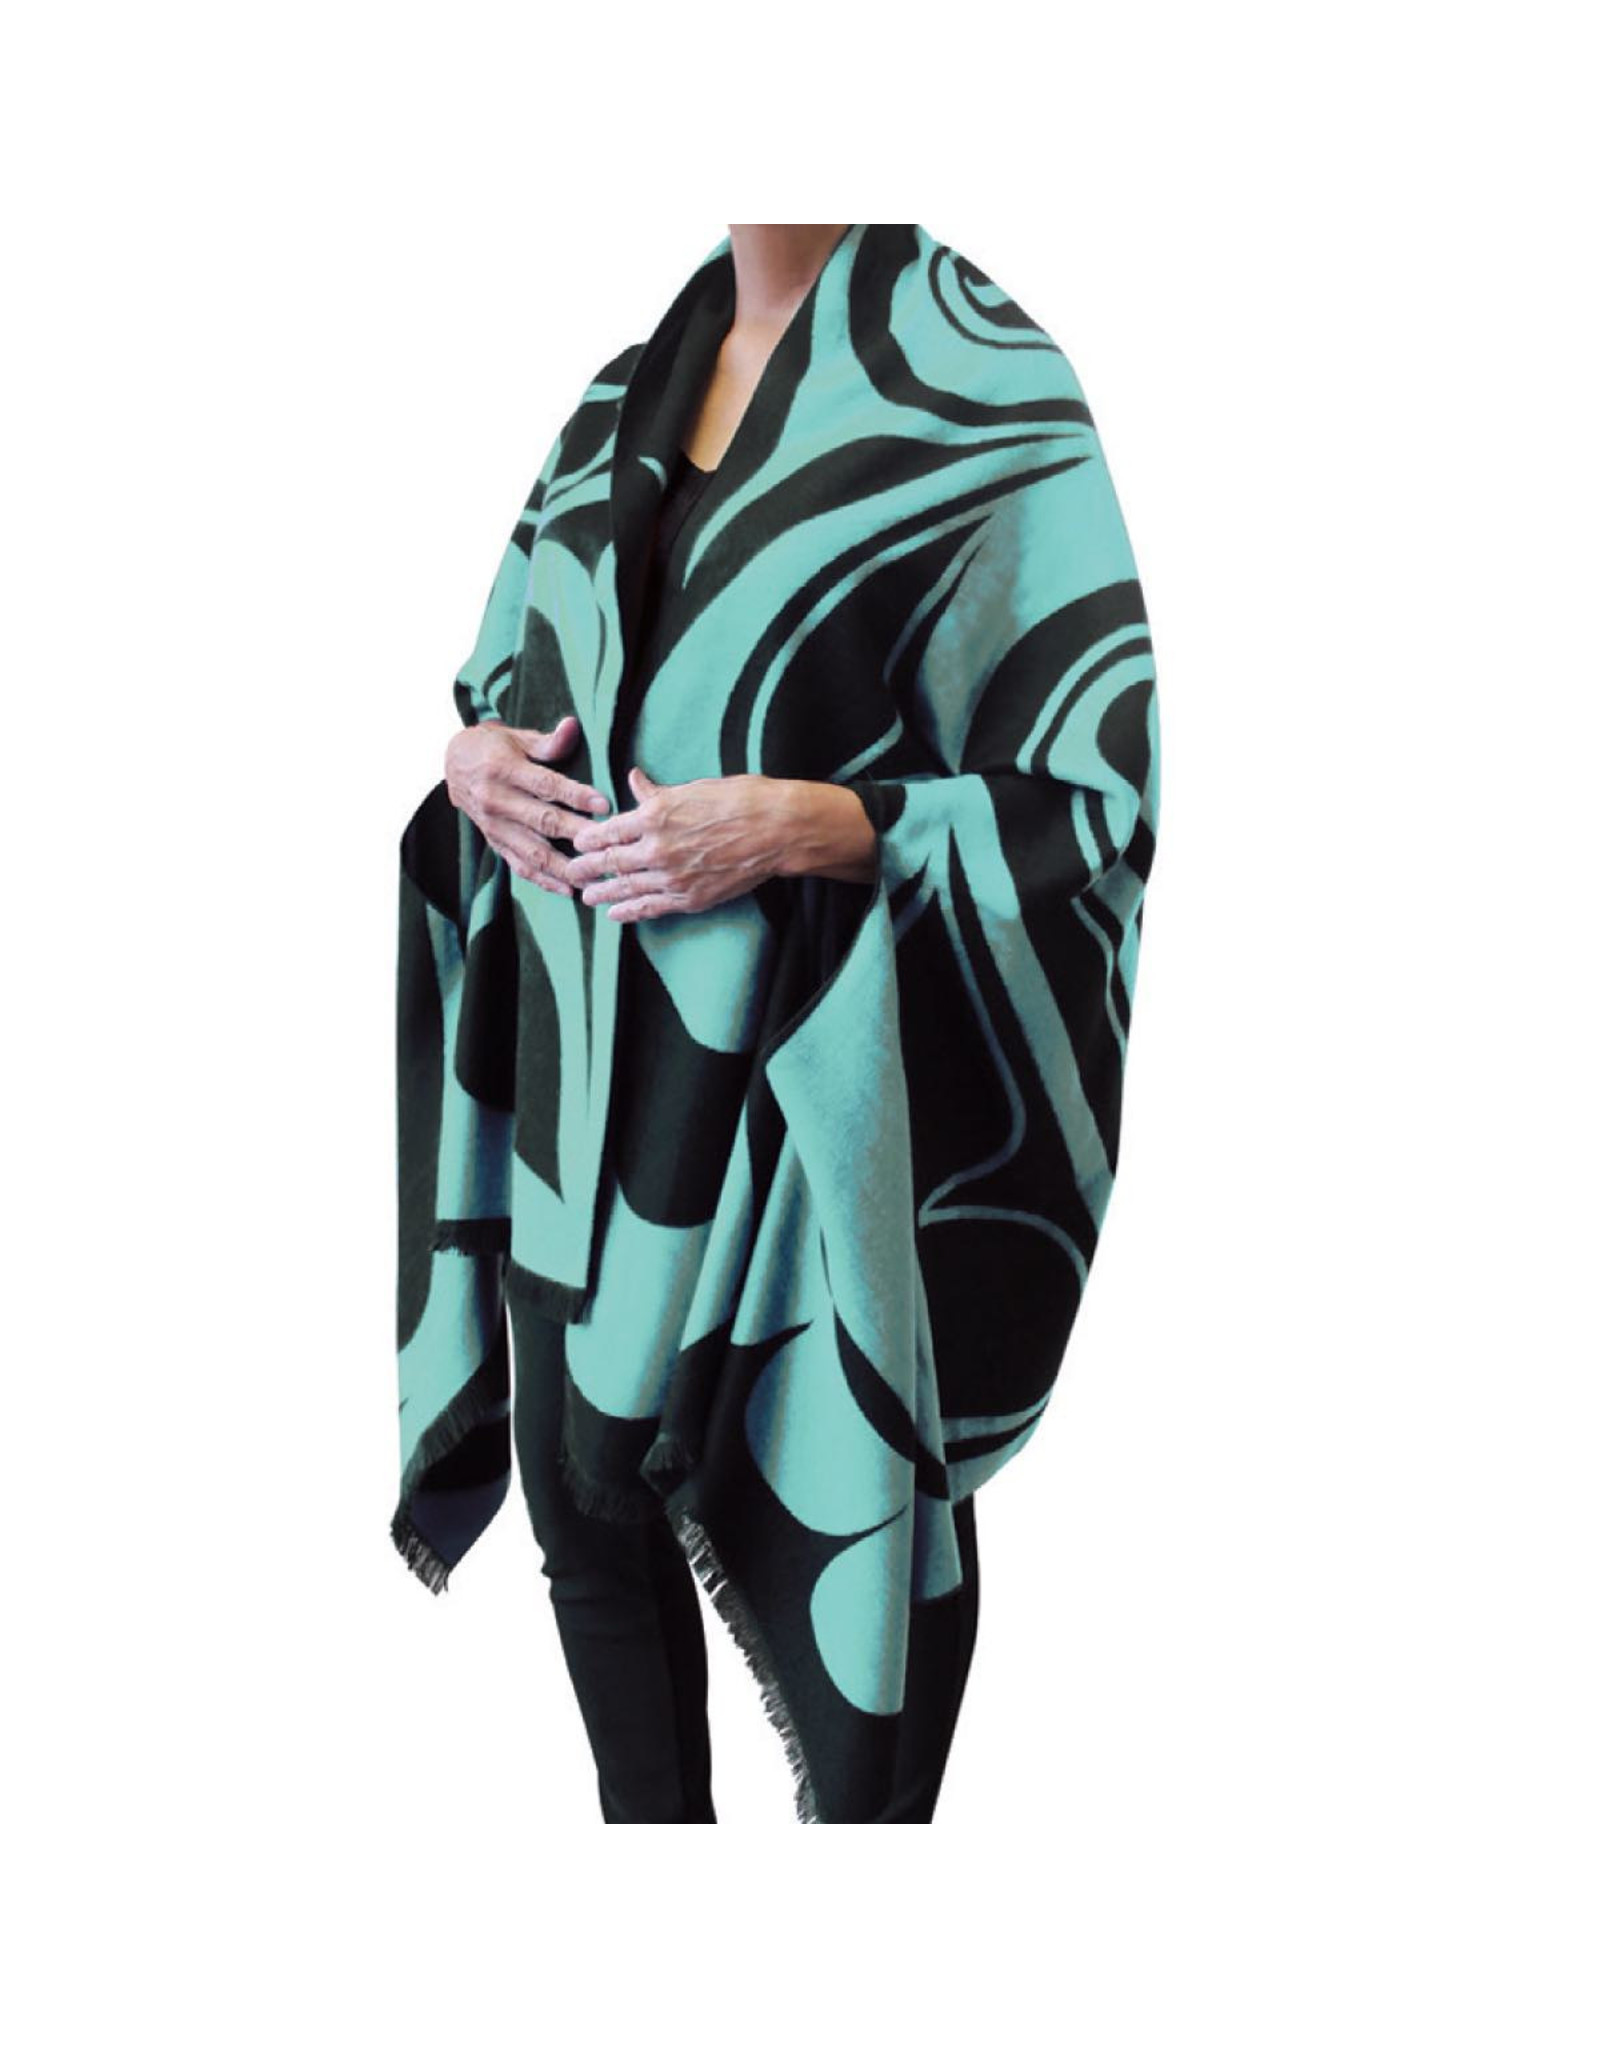 Reversible Fashion Cape - Eagle by Roger Smith (Black & Teal)